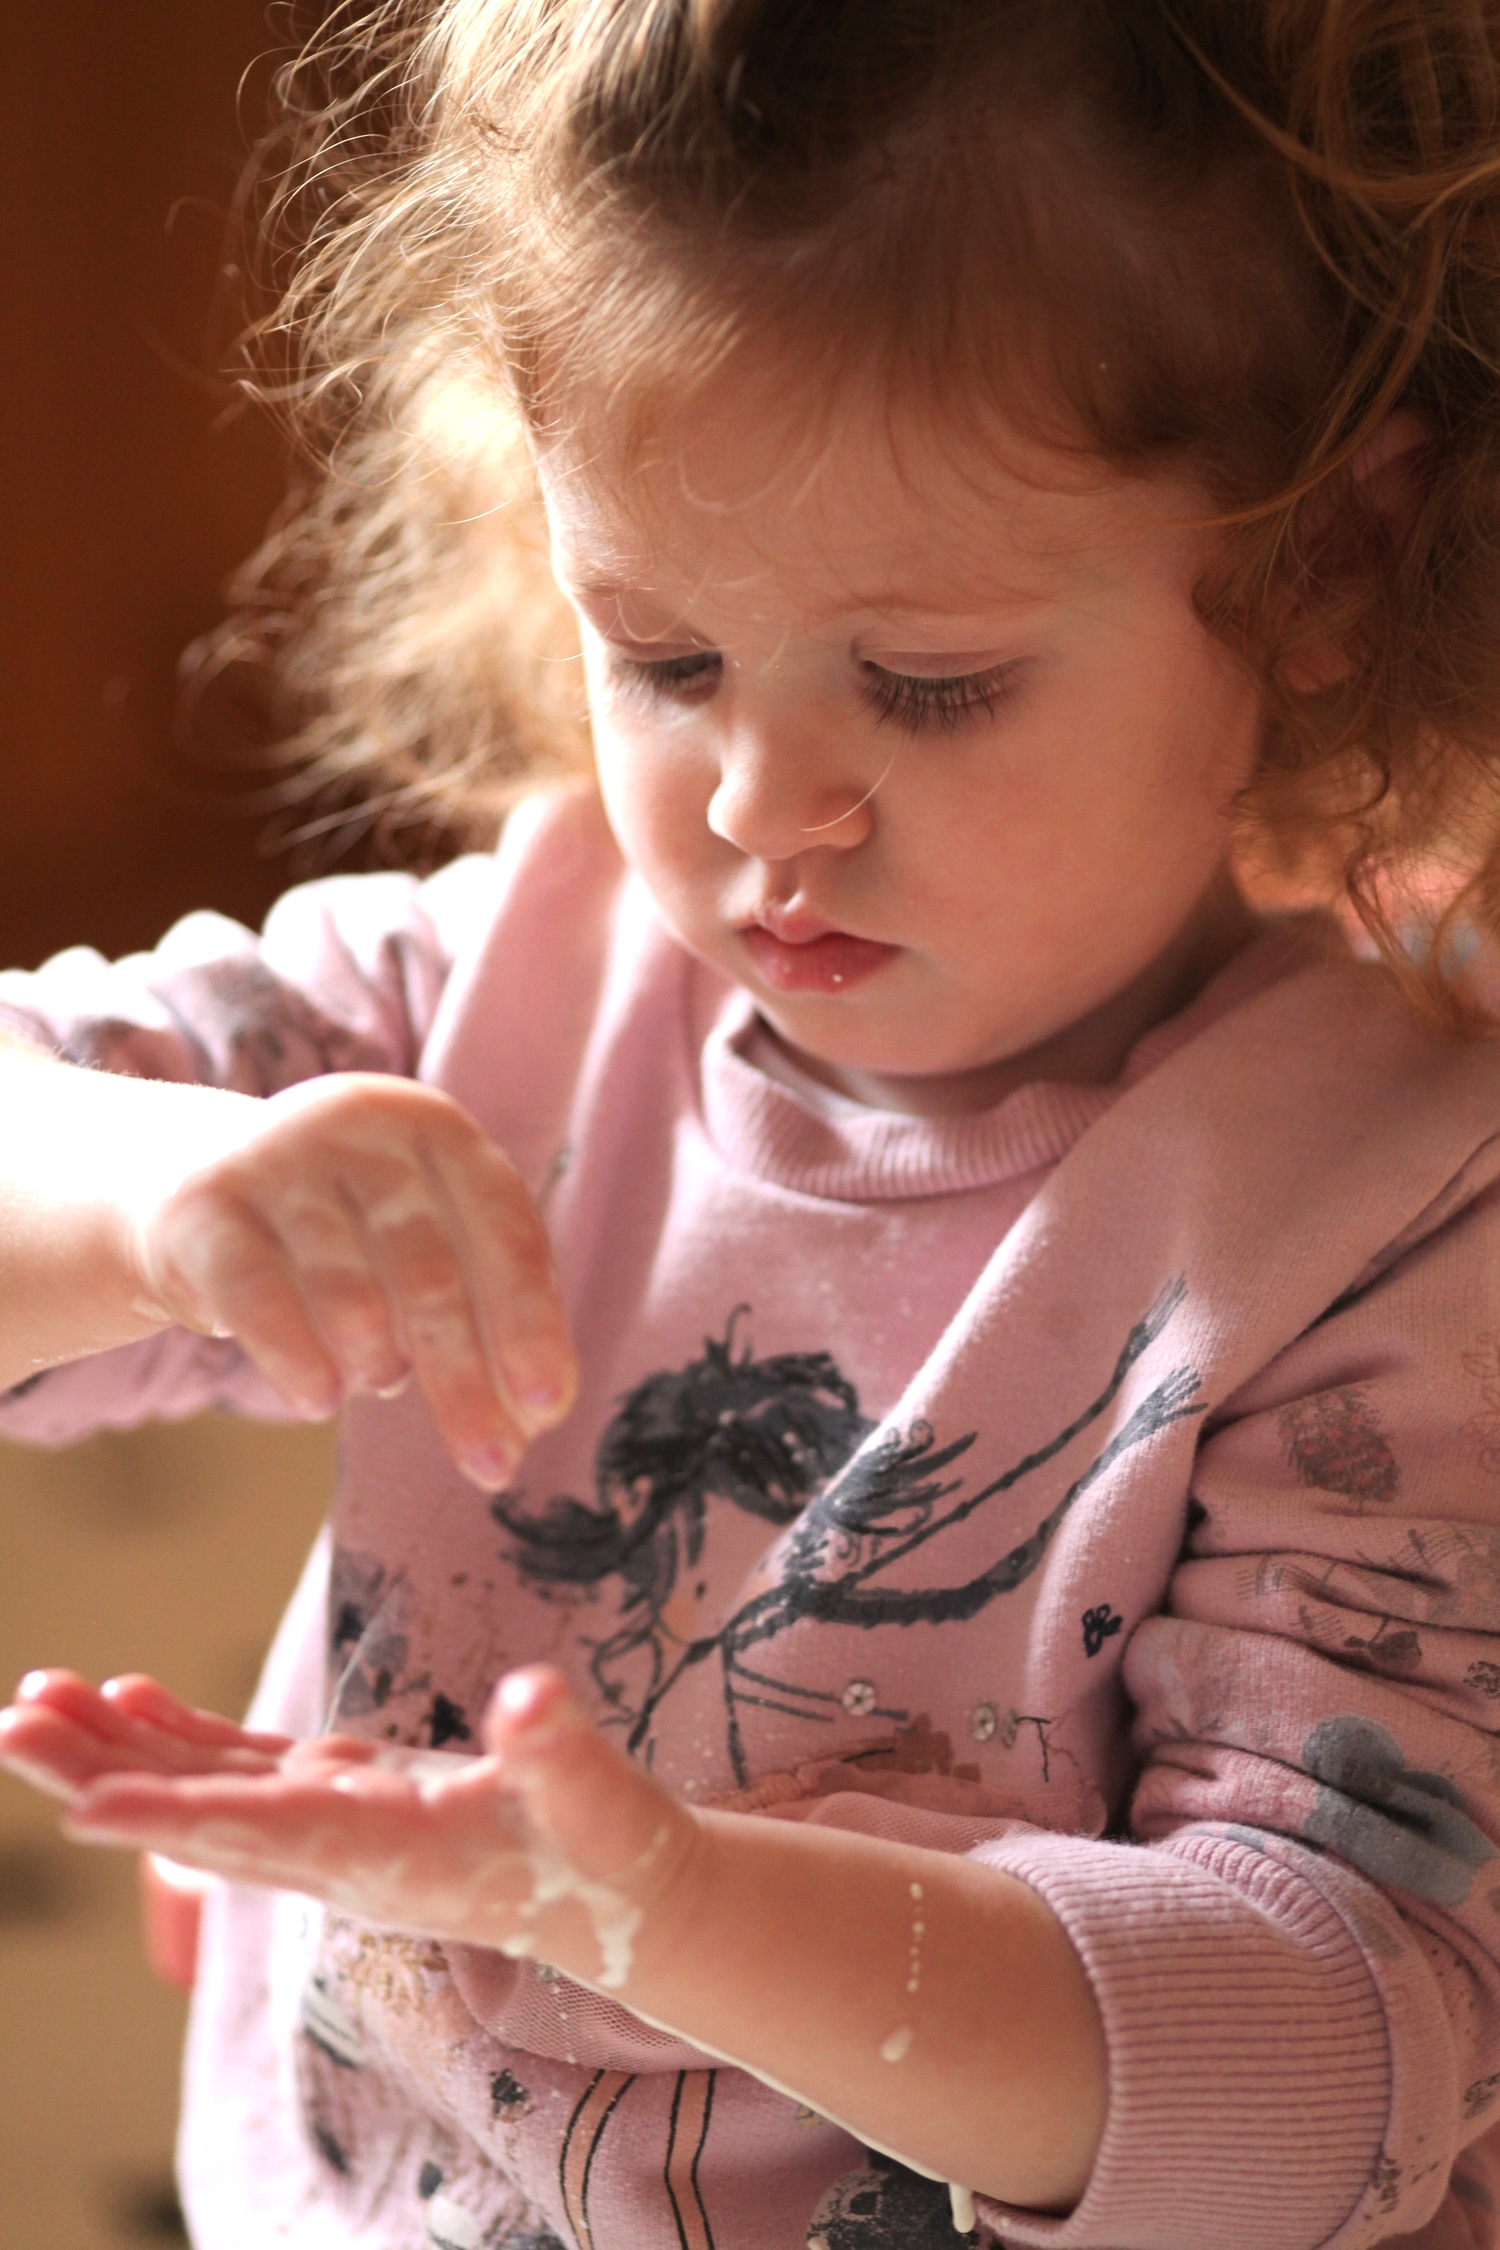 Taking a moment in time: sensory play